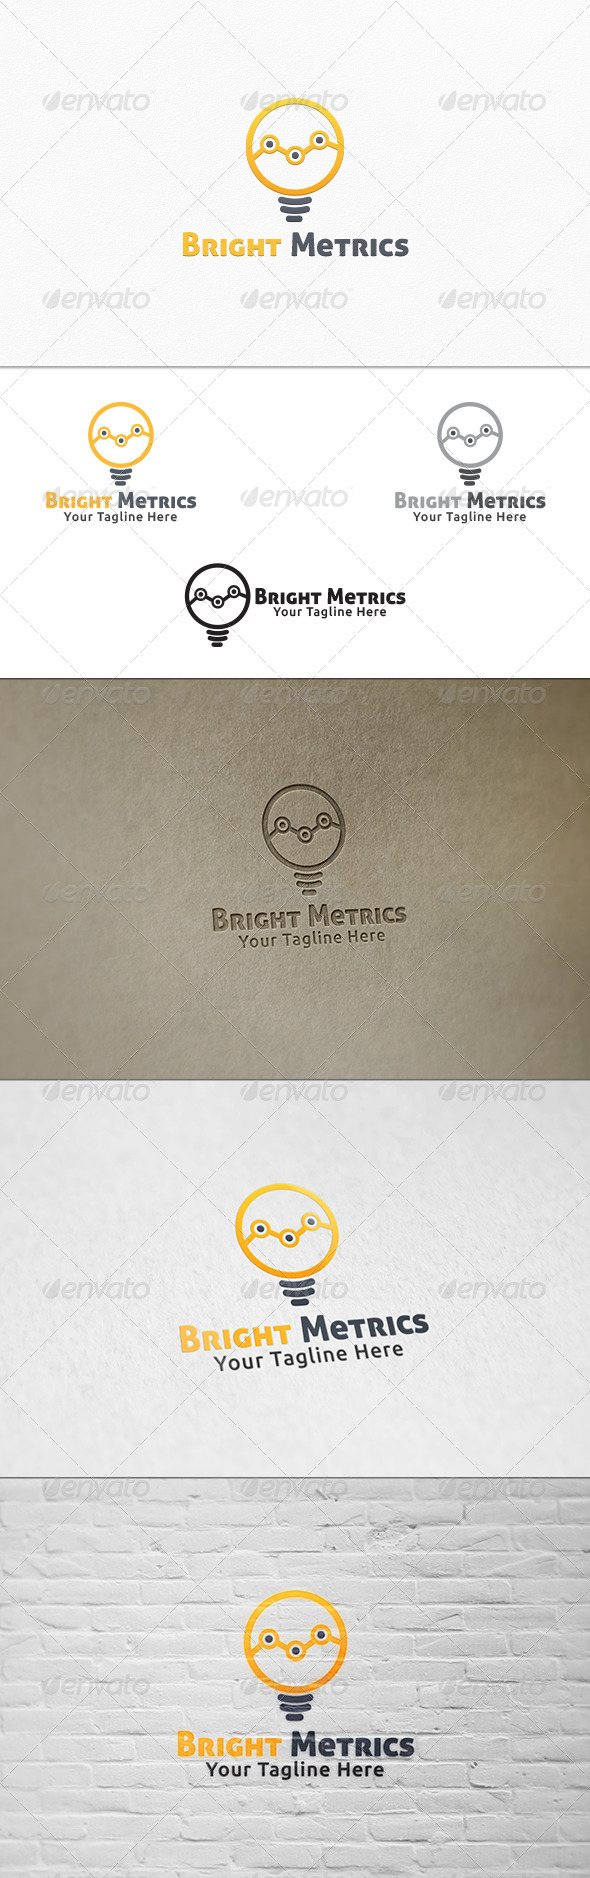 GraphicRiver Bright Metrics Logo Template 7501174